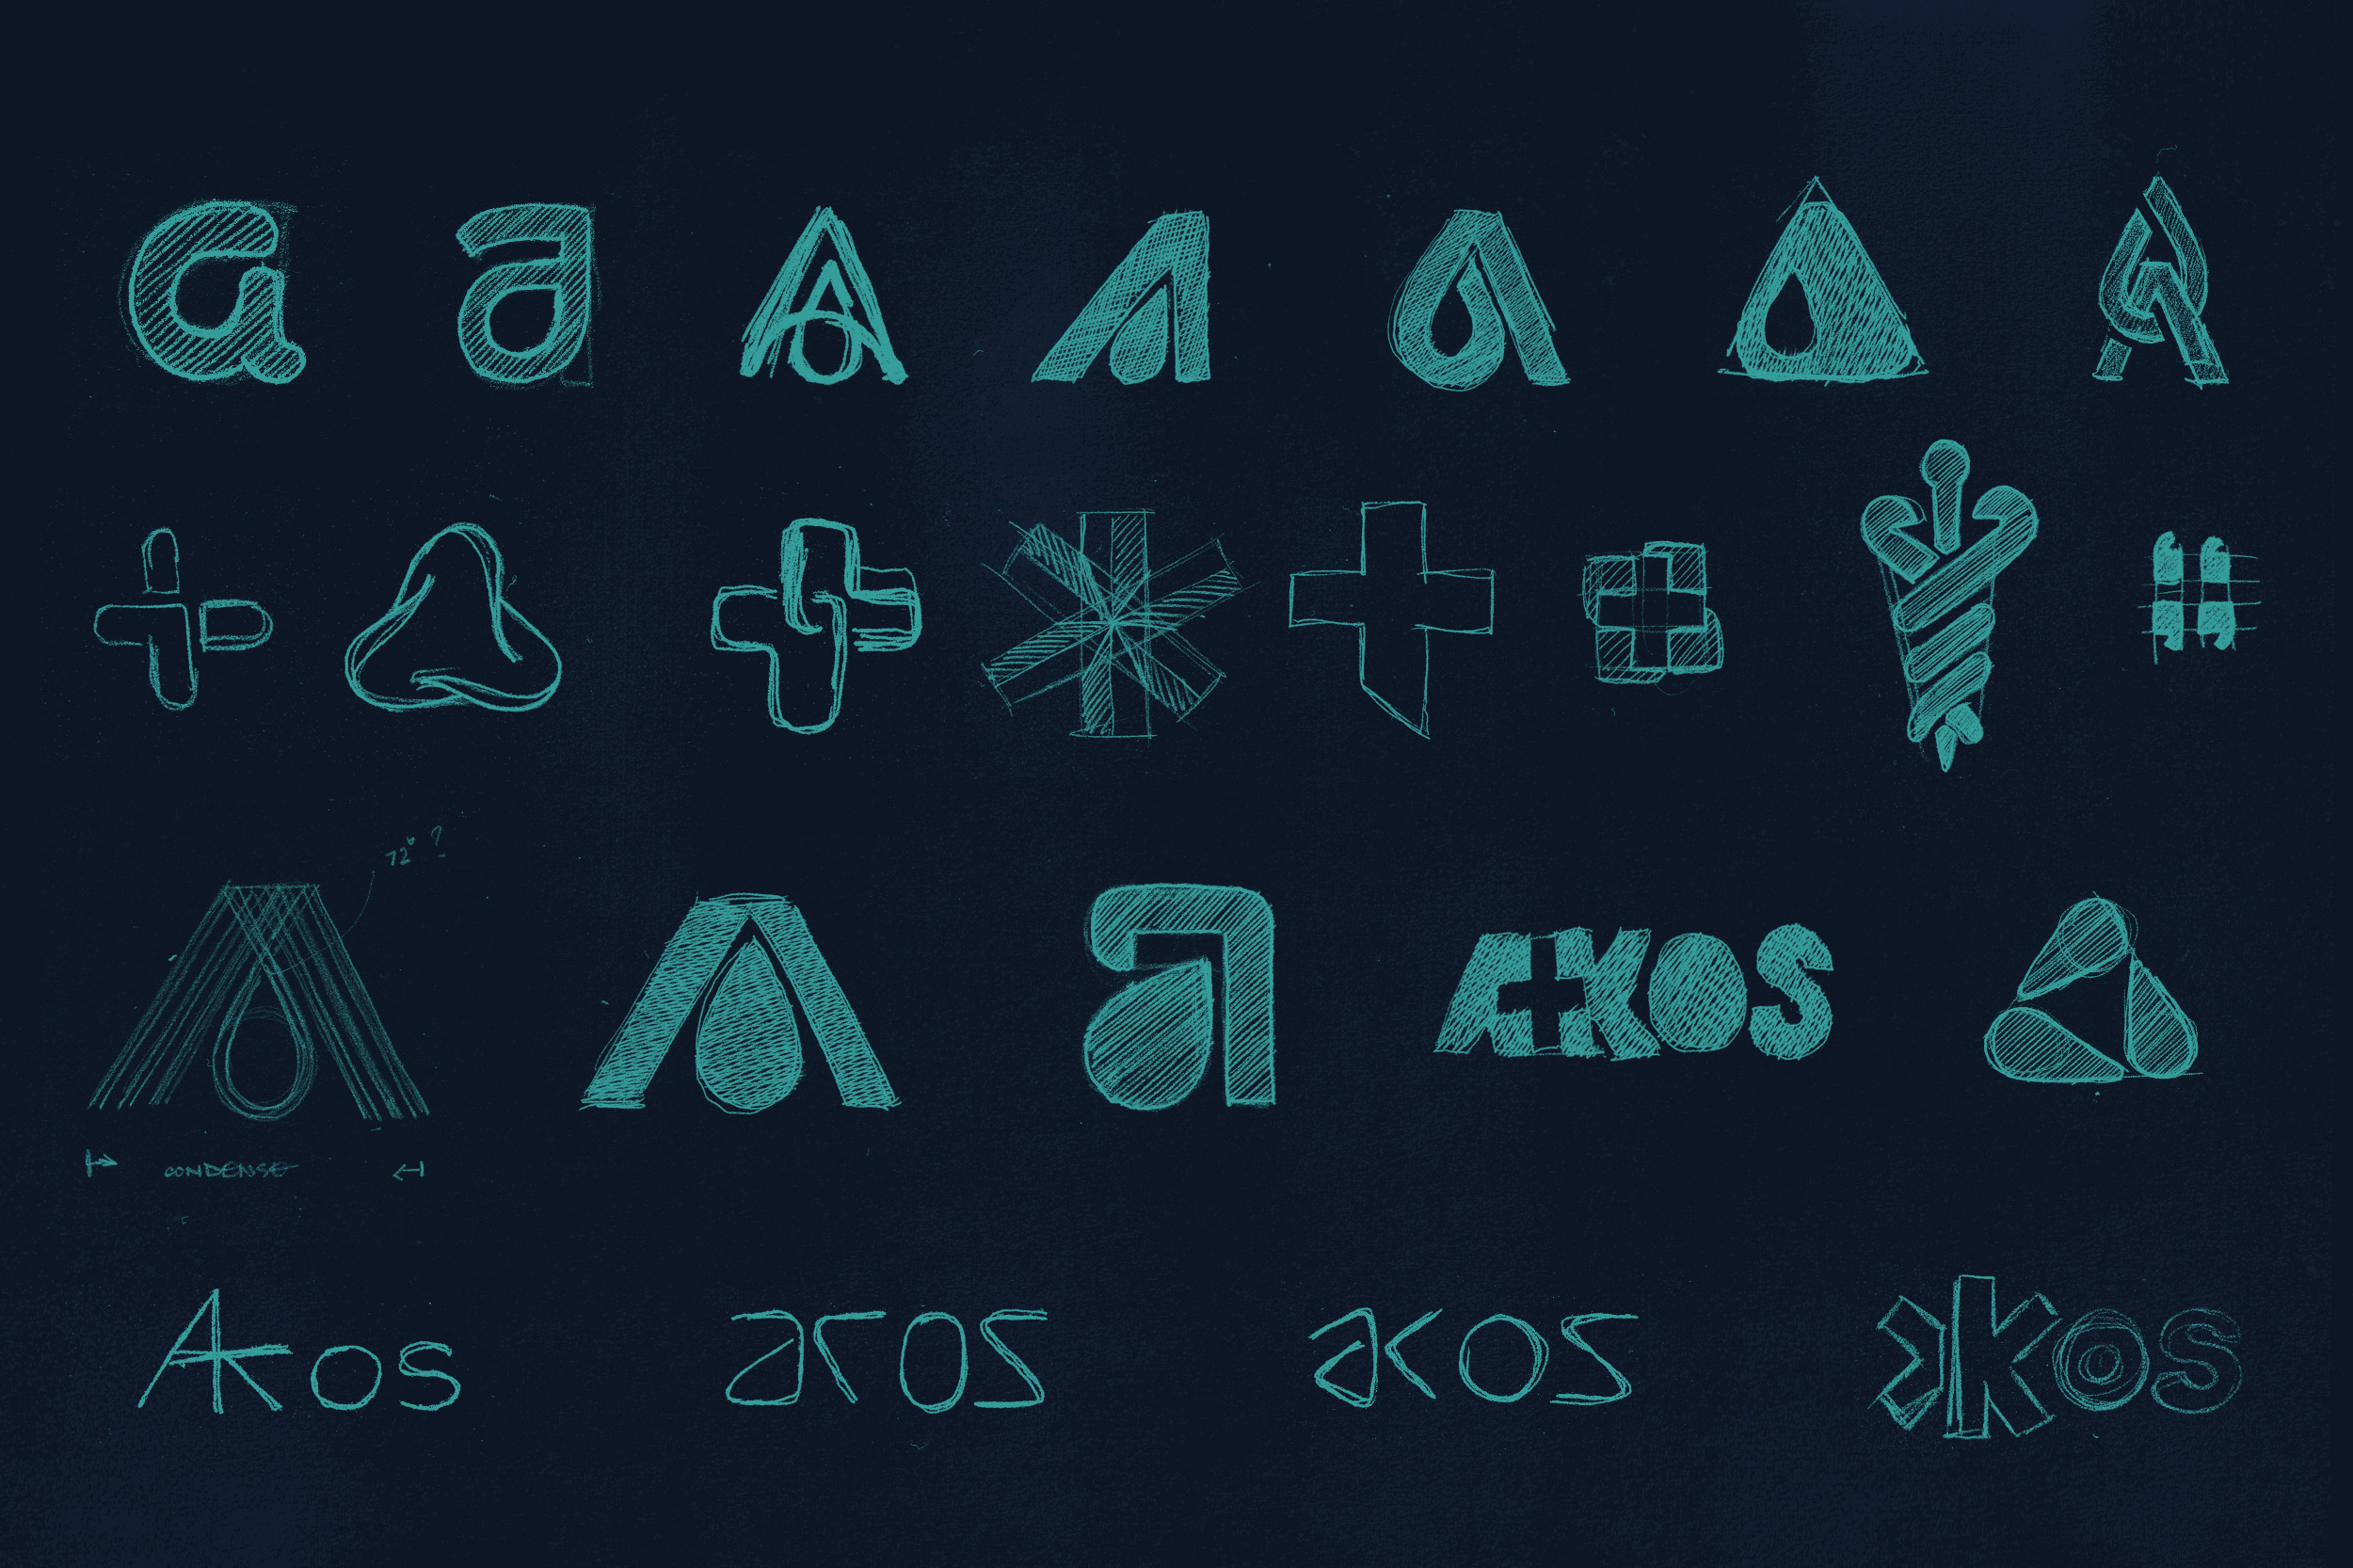 Akos logo sketches